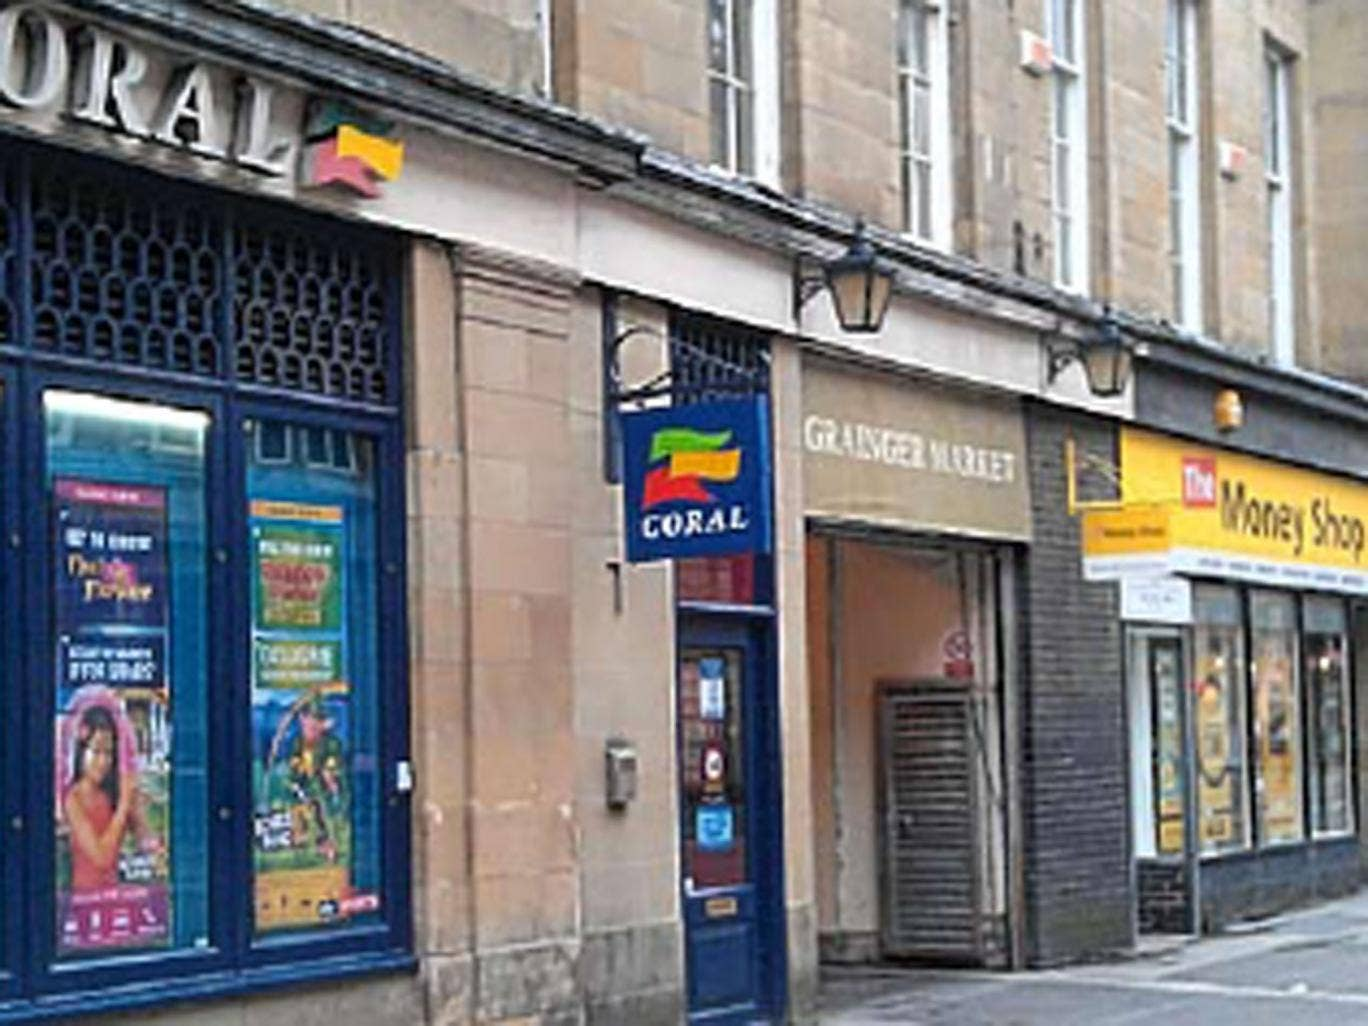 A bookmaker and a branch of The Money Shop almost cheek by jowl in a street in Newcastle